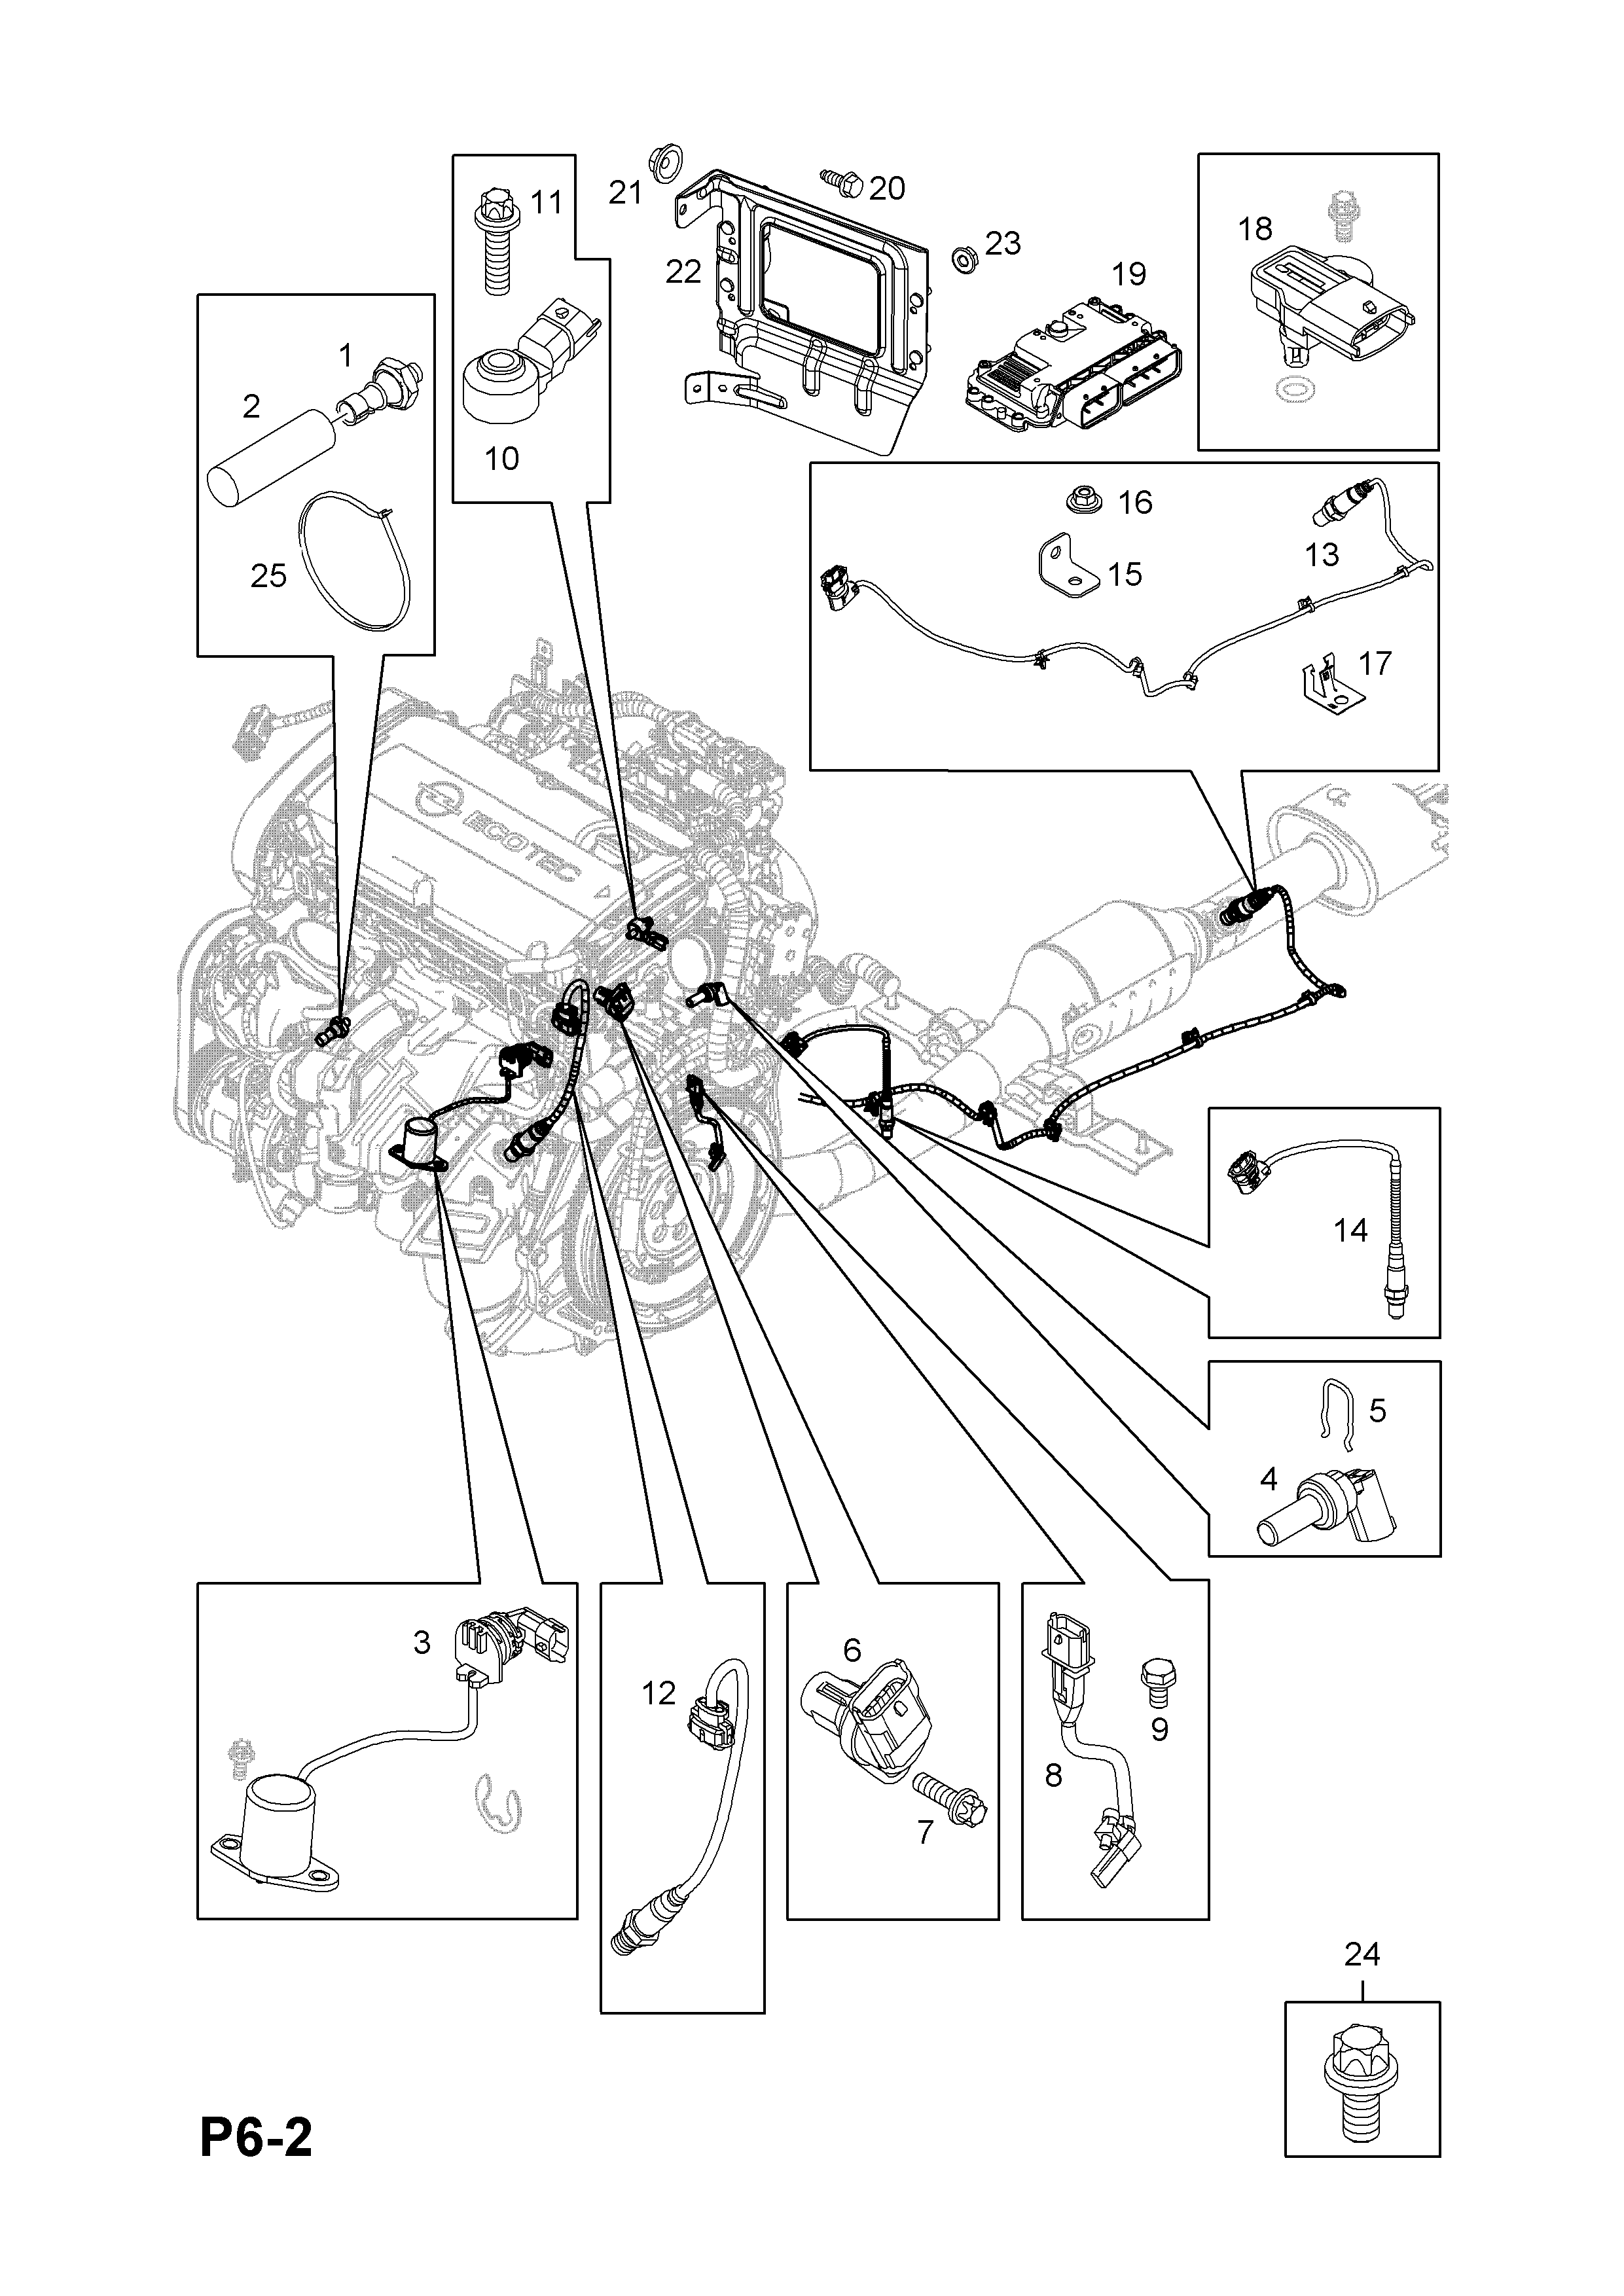 Opel Zafira B 2005 P Electrical 1 Engine And Cooling 121 Camshaft Diagram List Of Parts